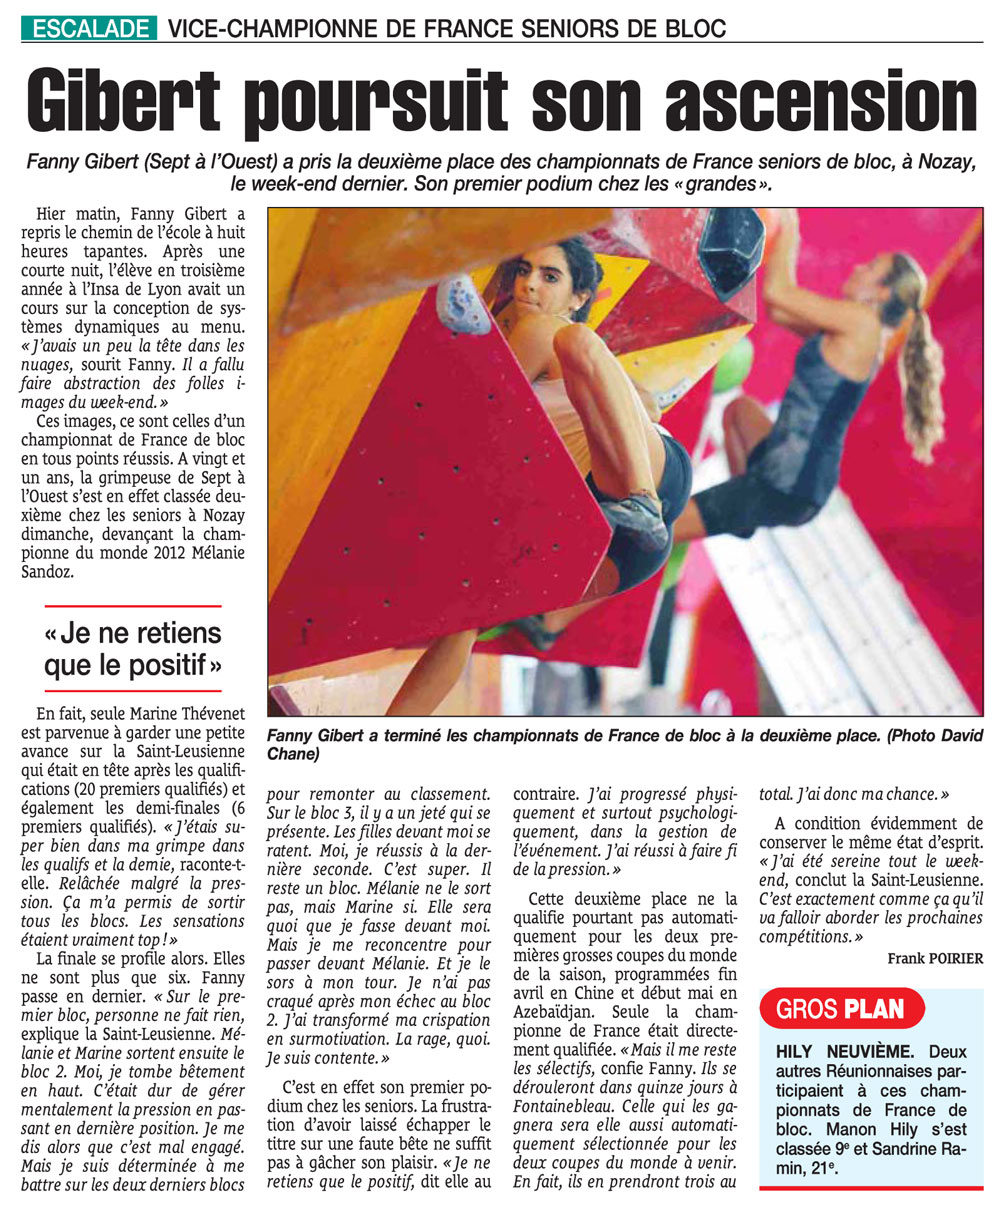 2014-04-01-QUOTIDIEN-CHAMP-FRANCE-BLOC-SENIOR-FANNY-GIBERT-ARGENT